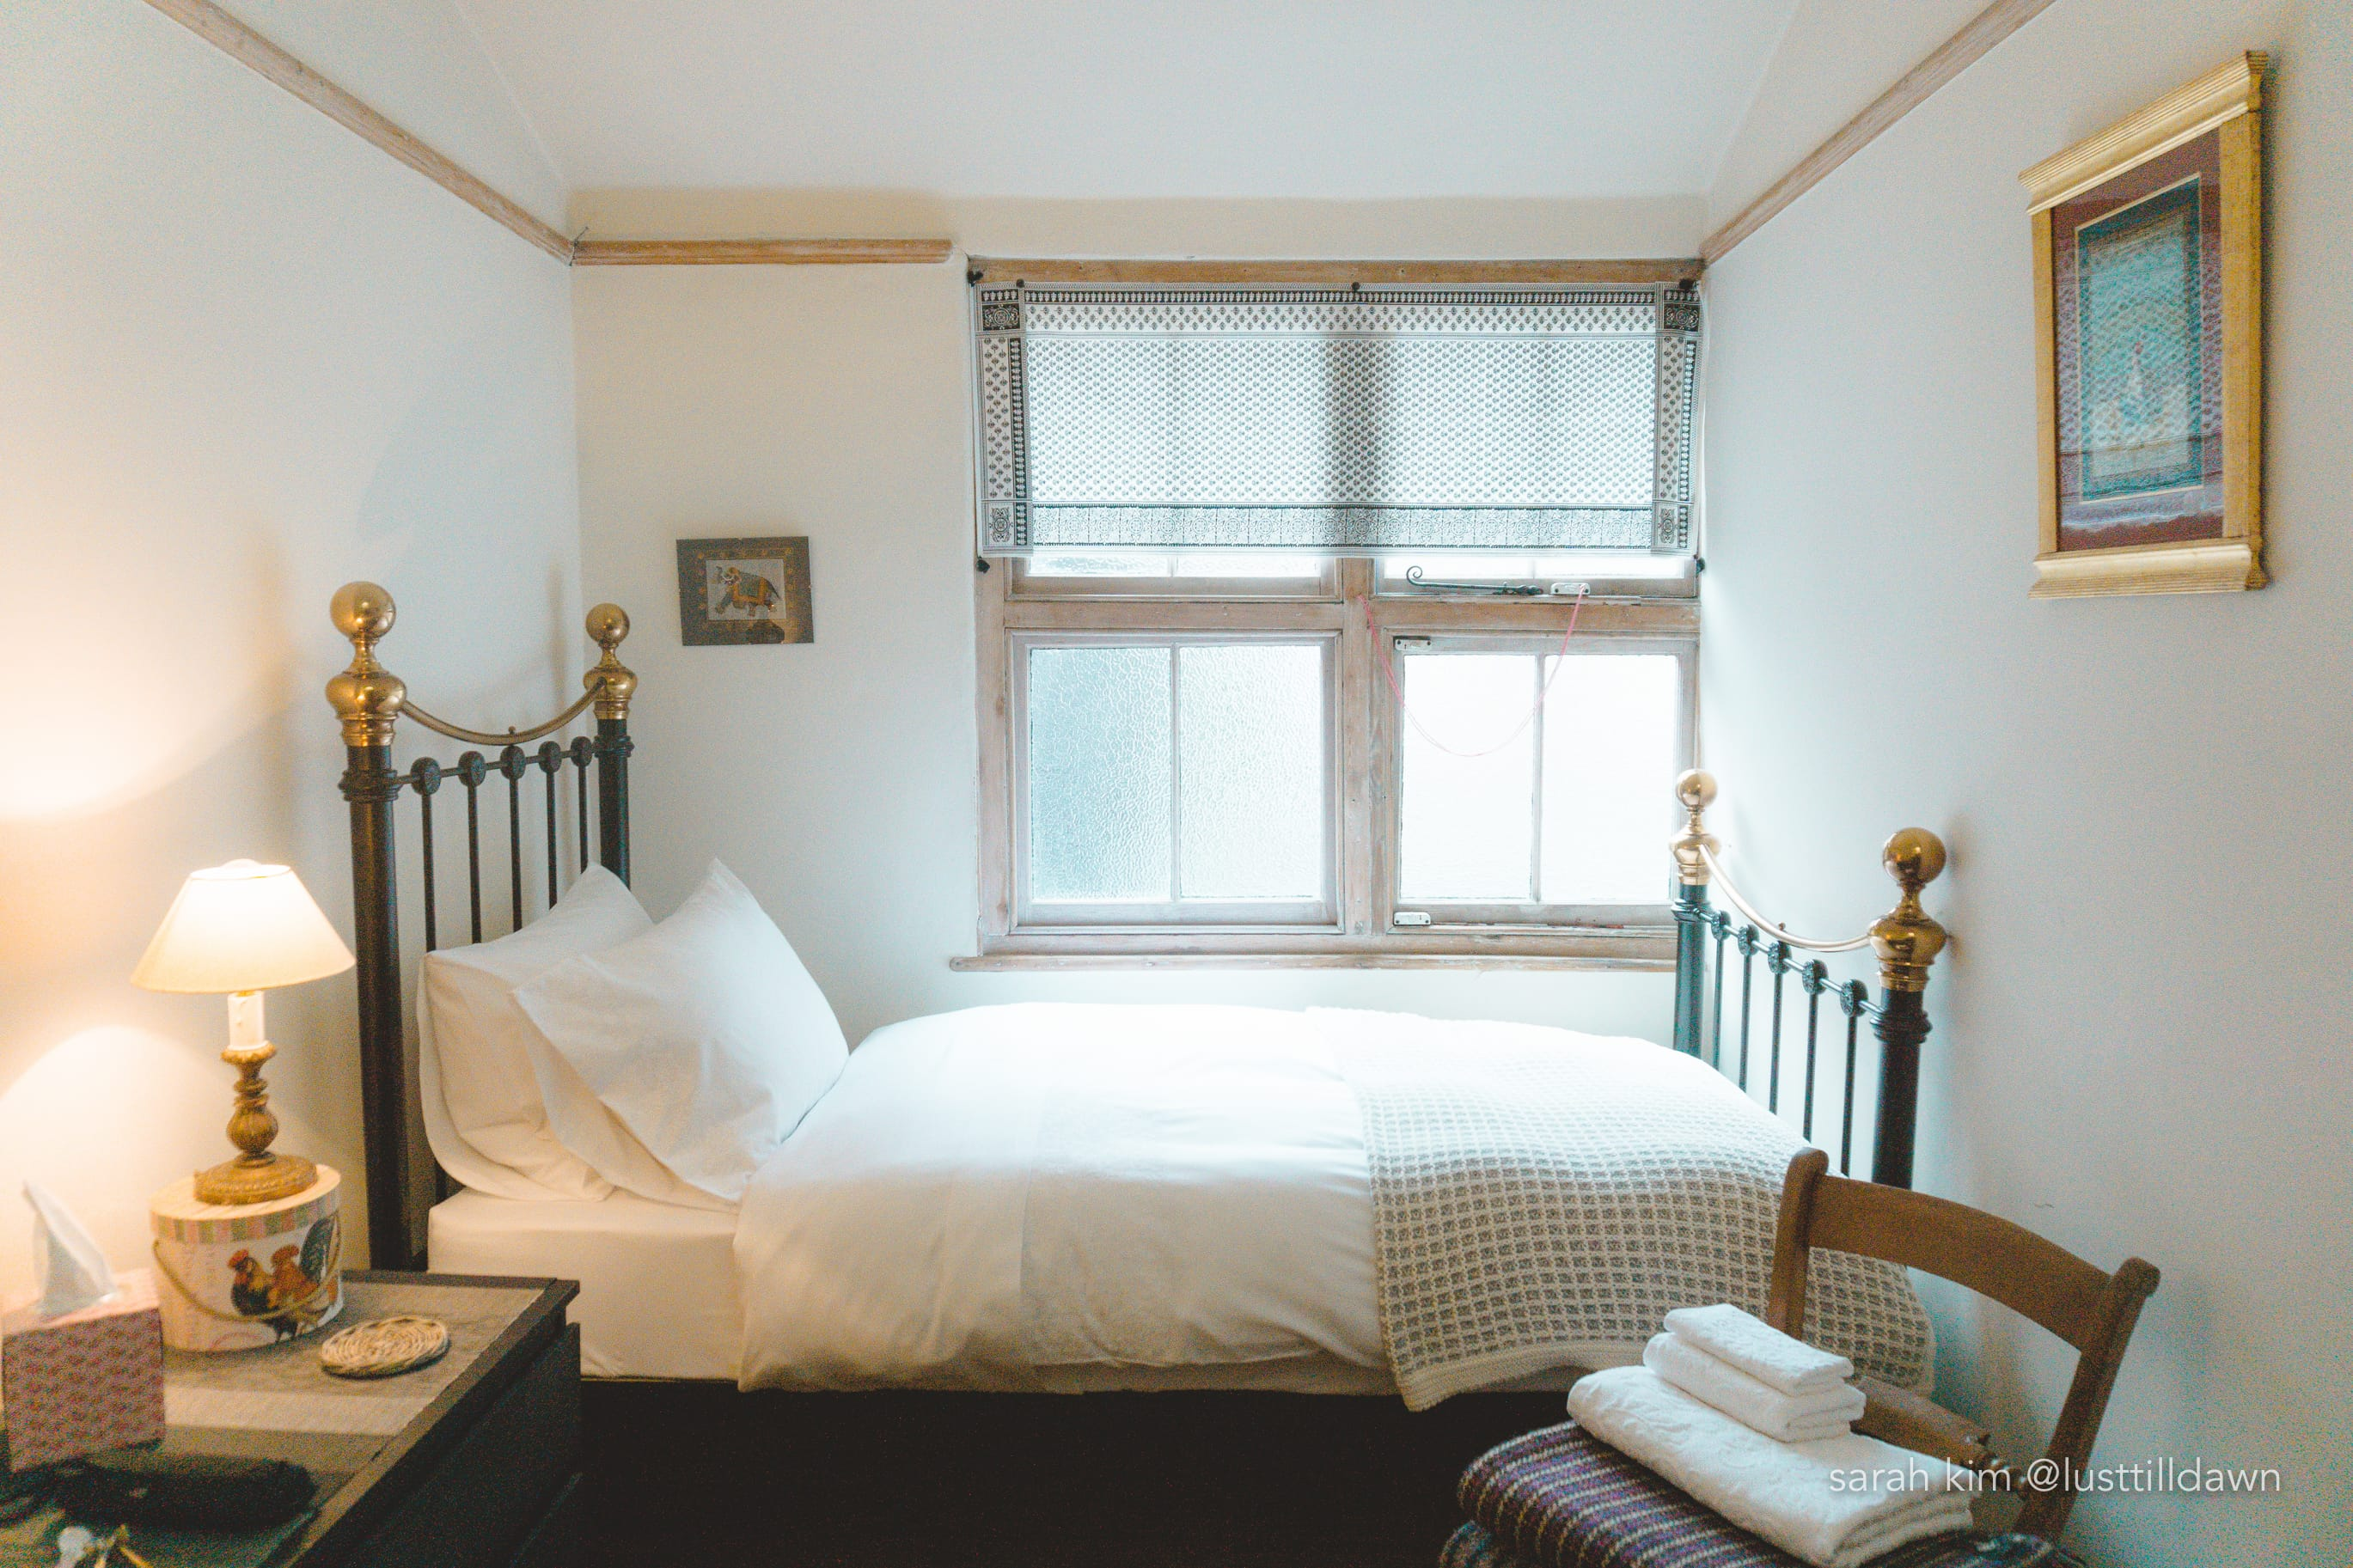 airbnb private room london where to stay in london lust till dawn fromlusttilldawn.com